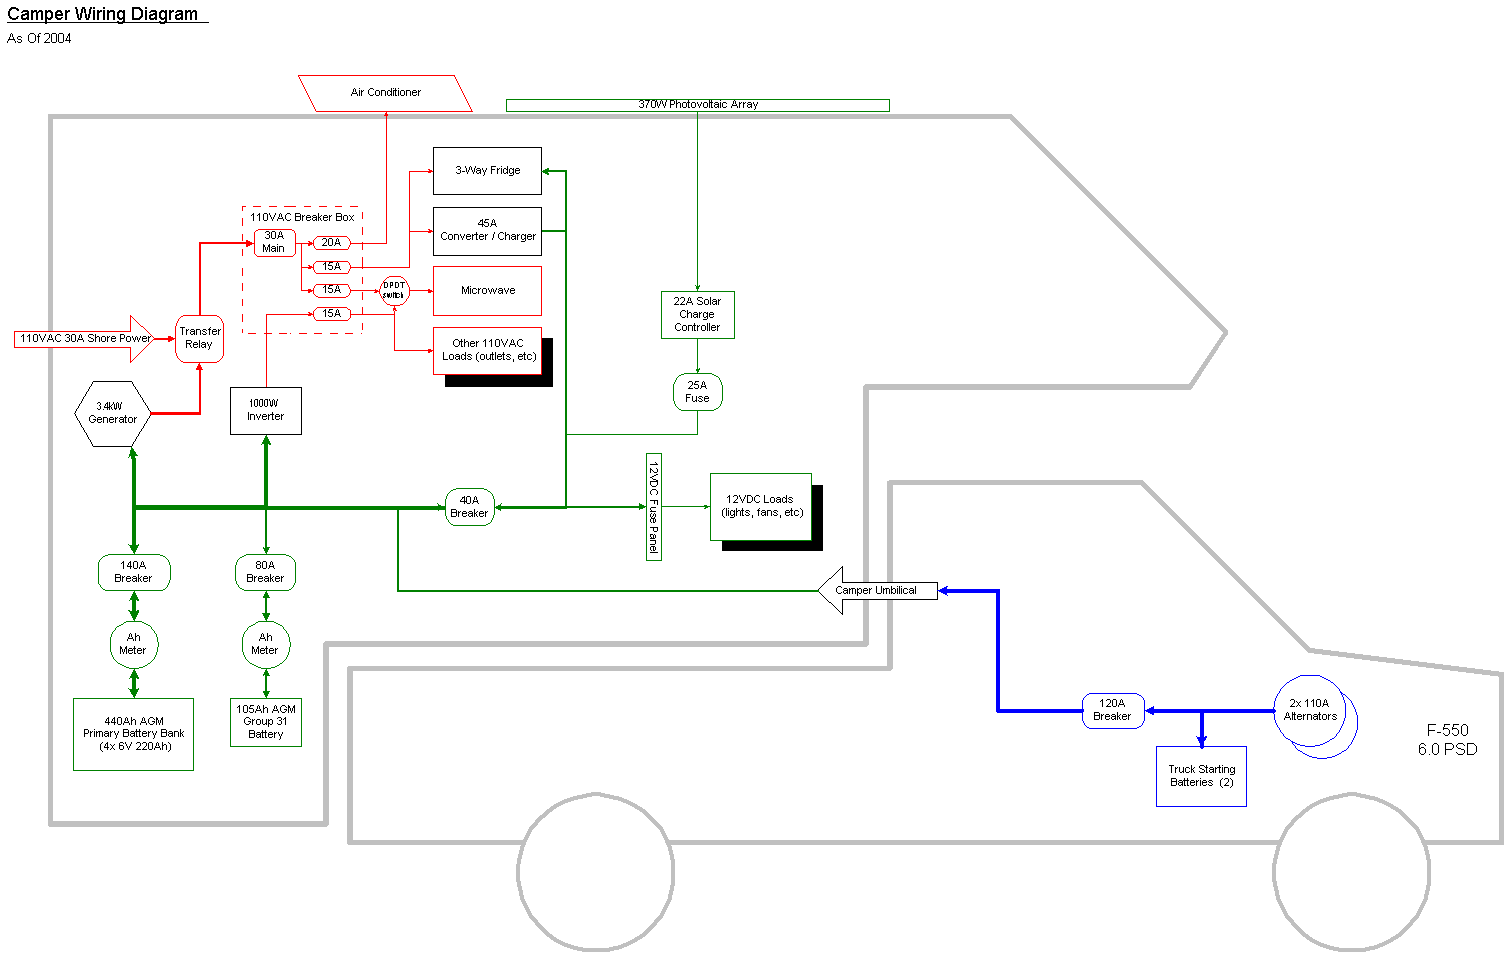 2004Diagram rv wiring diagrams 6 pole round wiring diagram \u2022 wiring diagrams truck camper wiring harness at mifinder.co